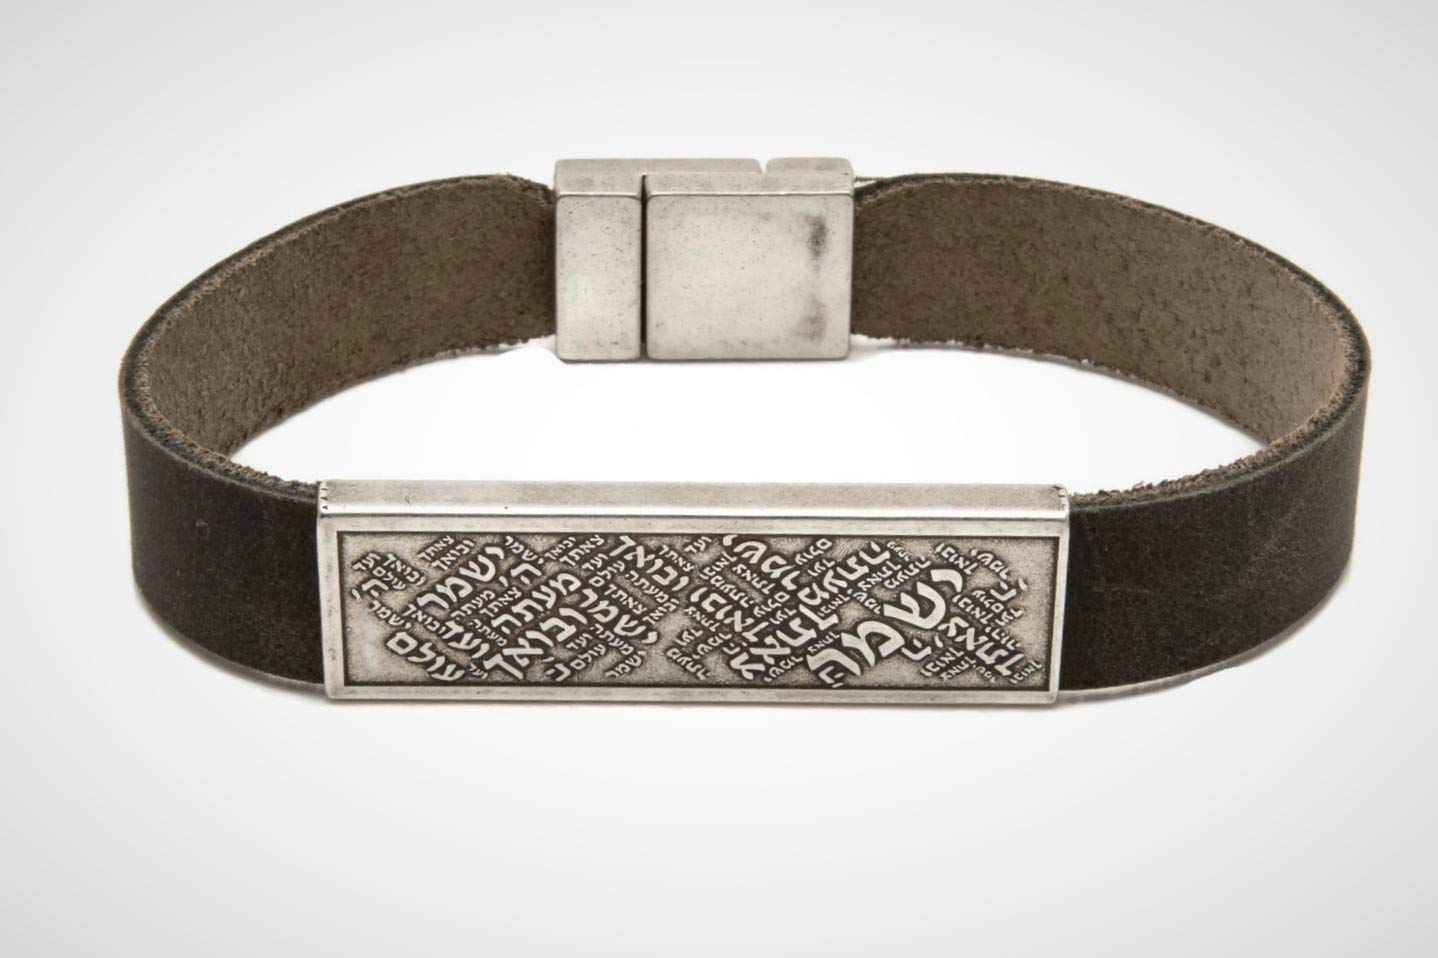 Unique Handmade Religious Hebrew mens Jewelry Silver plated bracelet for men and women Adjustable Brown Leather bracelet engraved withShir Lamaalot prayer Israeli unisex gift Jewish Jewelry